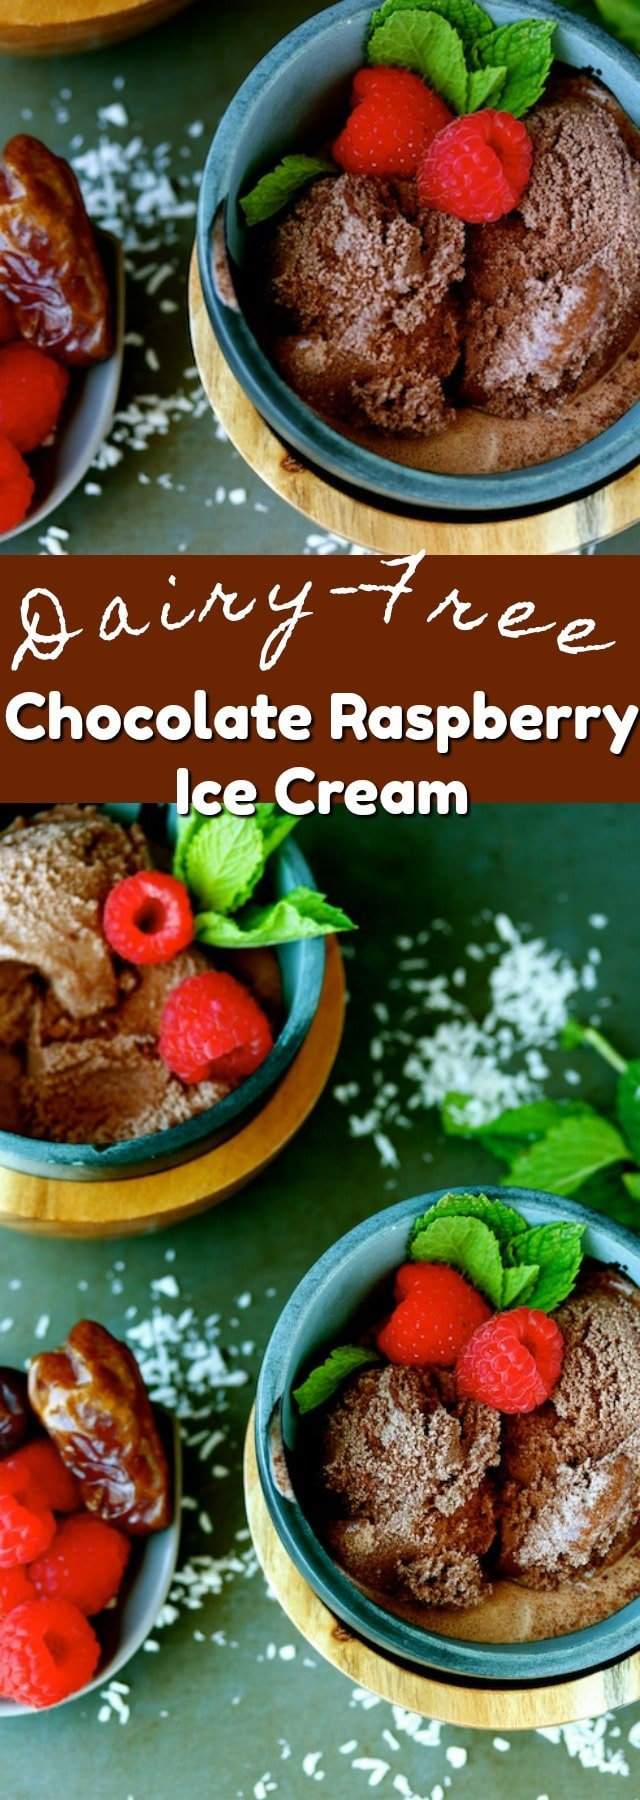 Dairy-free Chocolate Raspberry Ice Cream made using coconut milk. Date-sweetened so no refined sugars necessary! | Vegan ice cream, paleo ice cream, healthy ice cream, sugar-free ice cream, nice cream recipe, healthy chocolate ice cream recipe